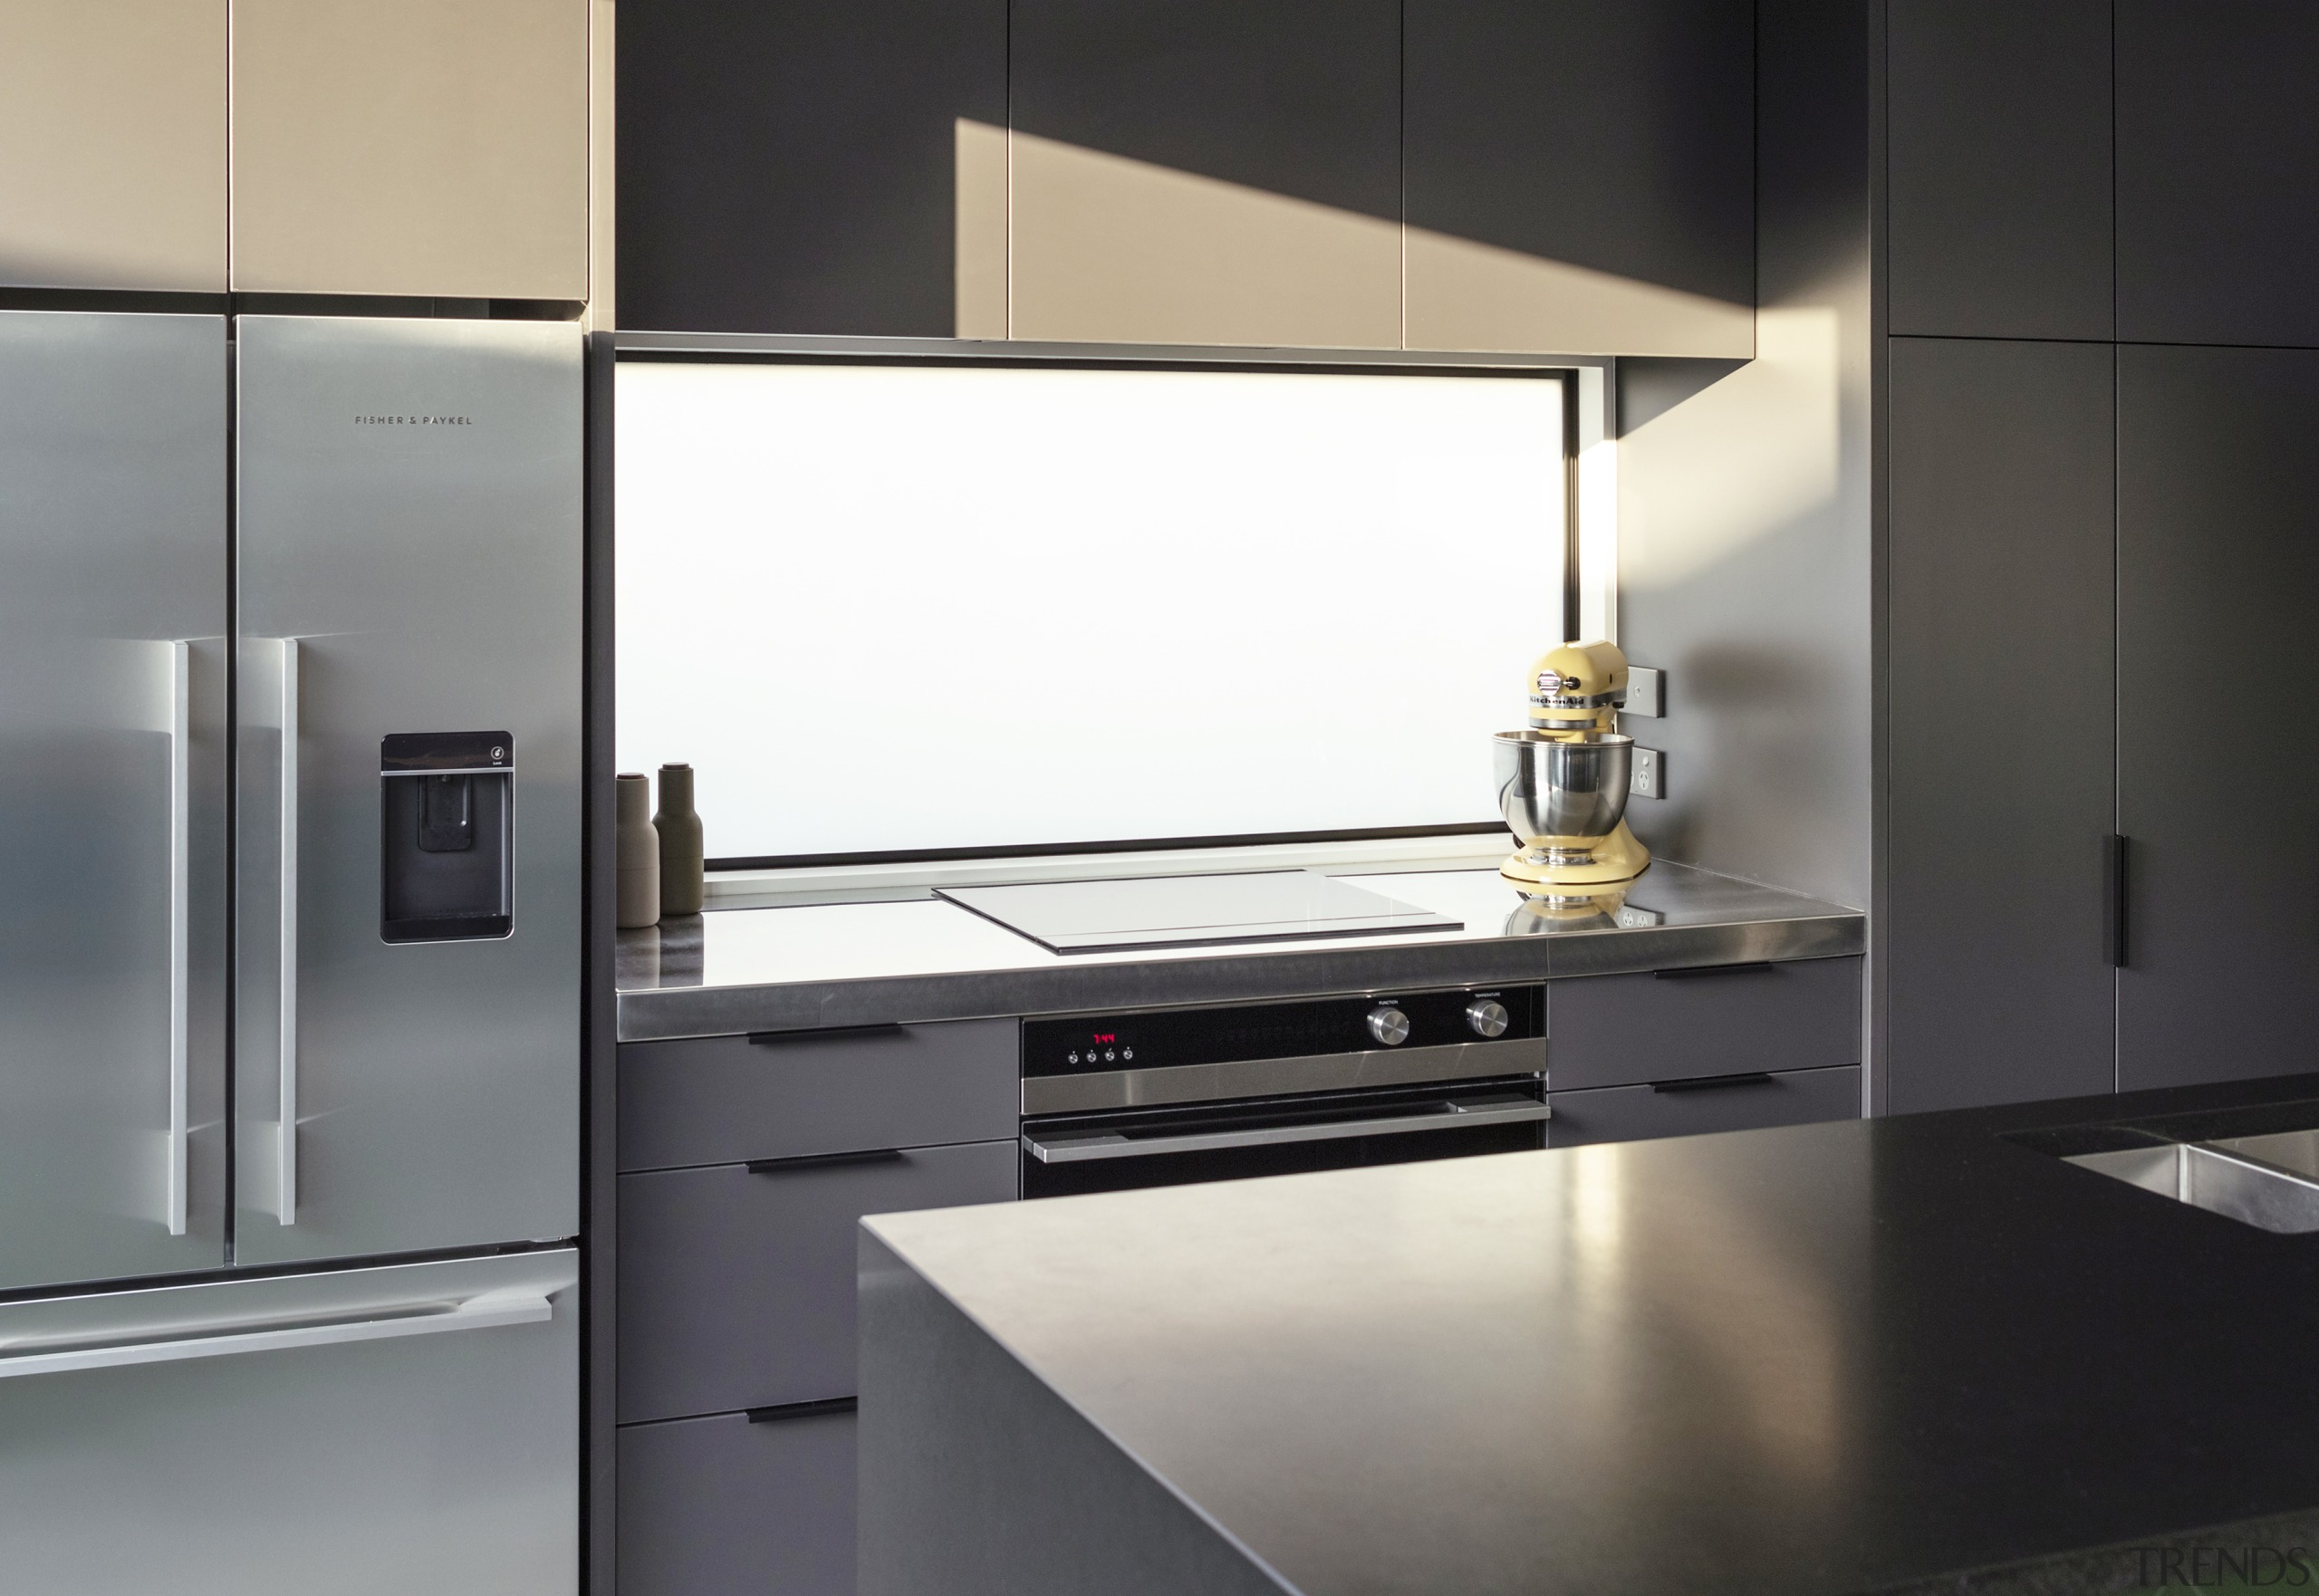 A window splashback admits natural light on the